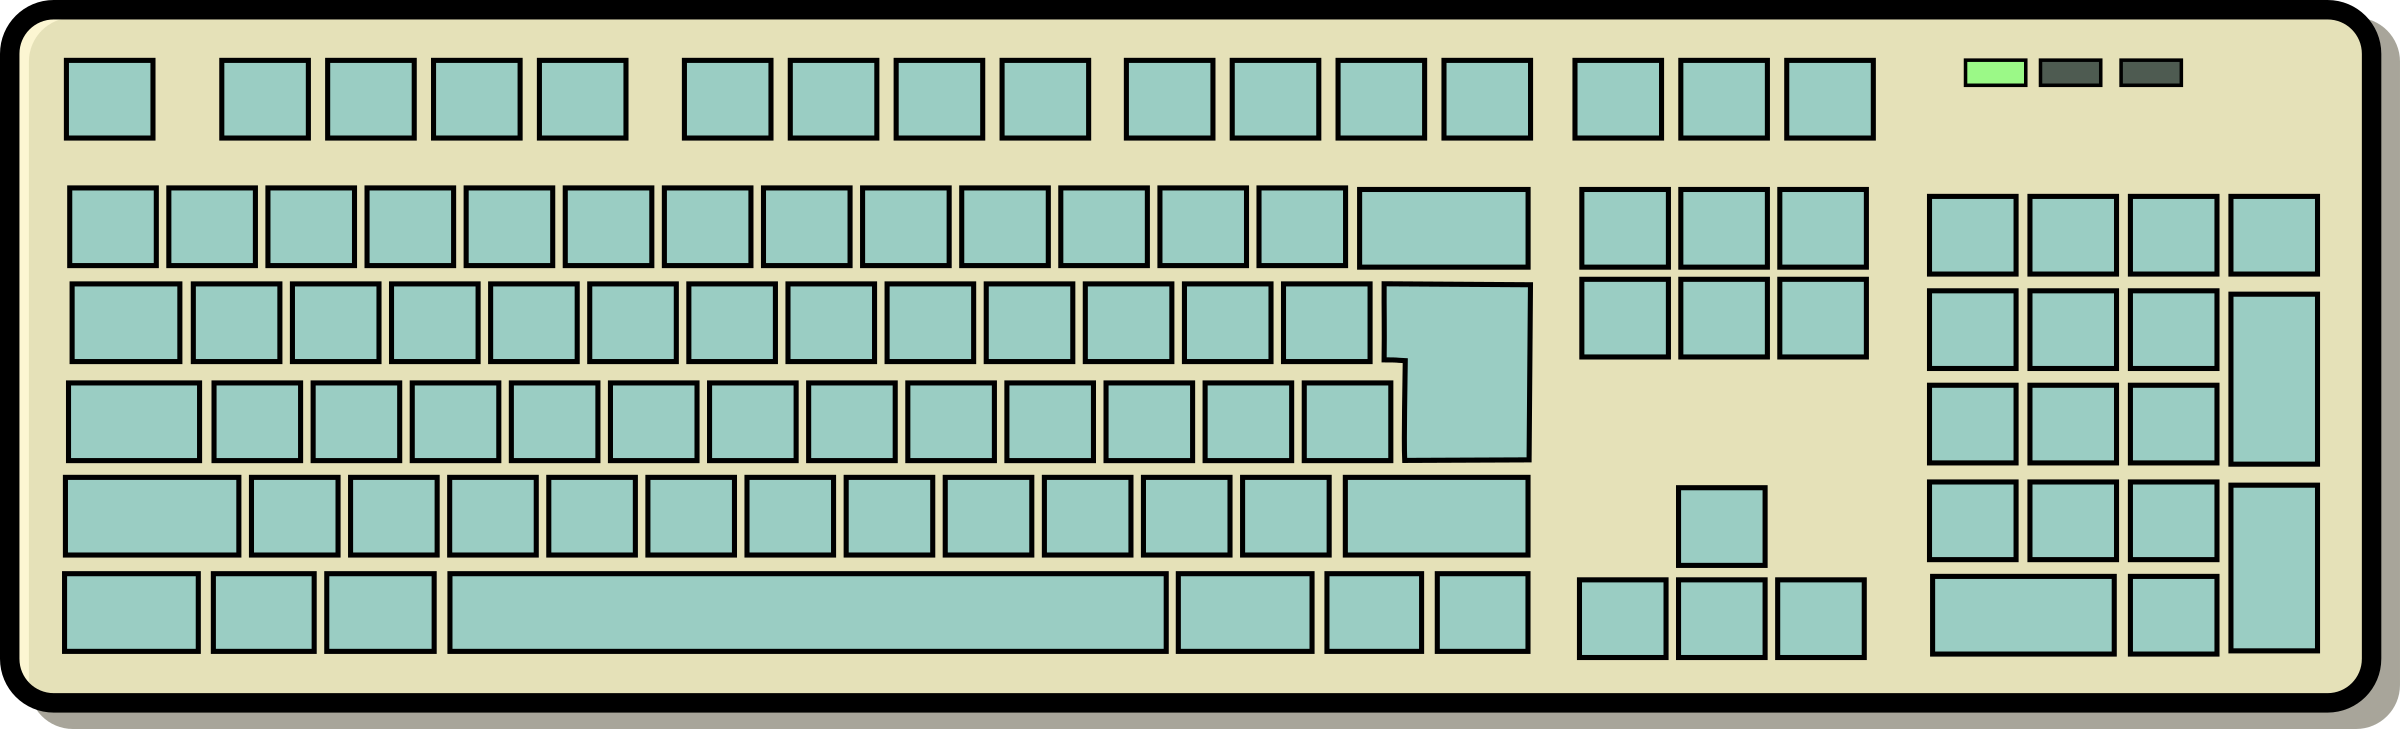 Keyboard by bdoin